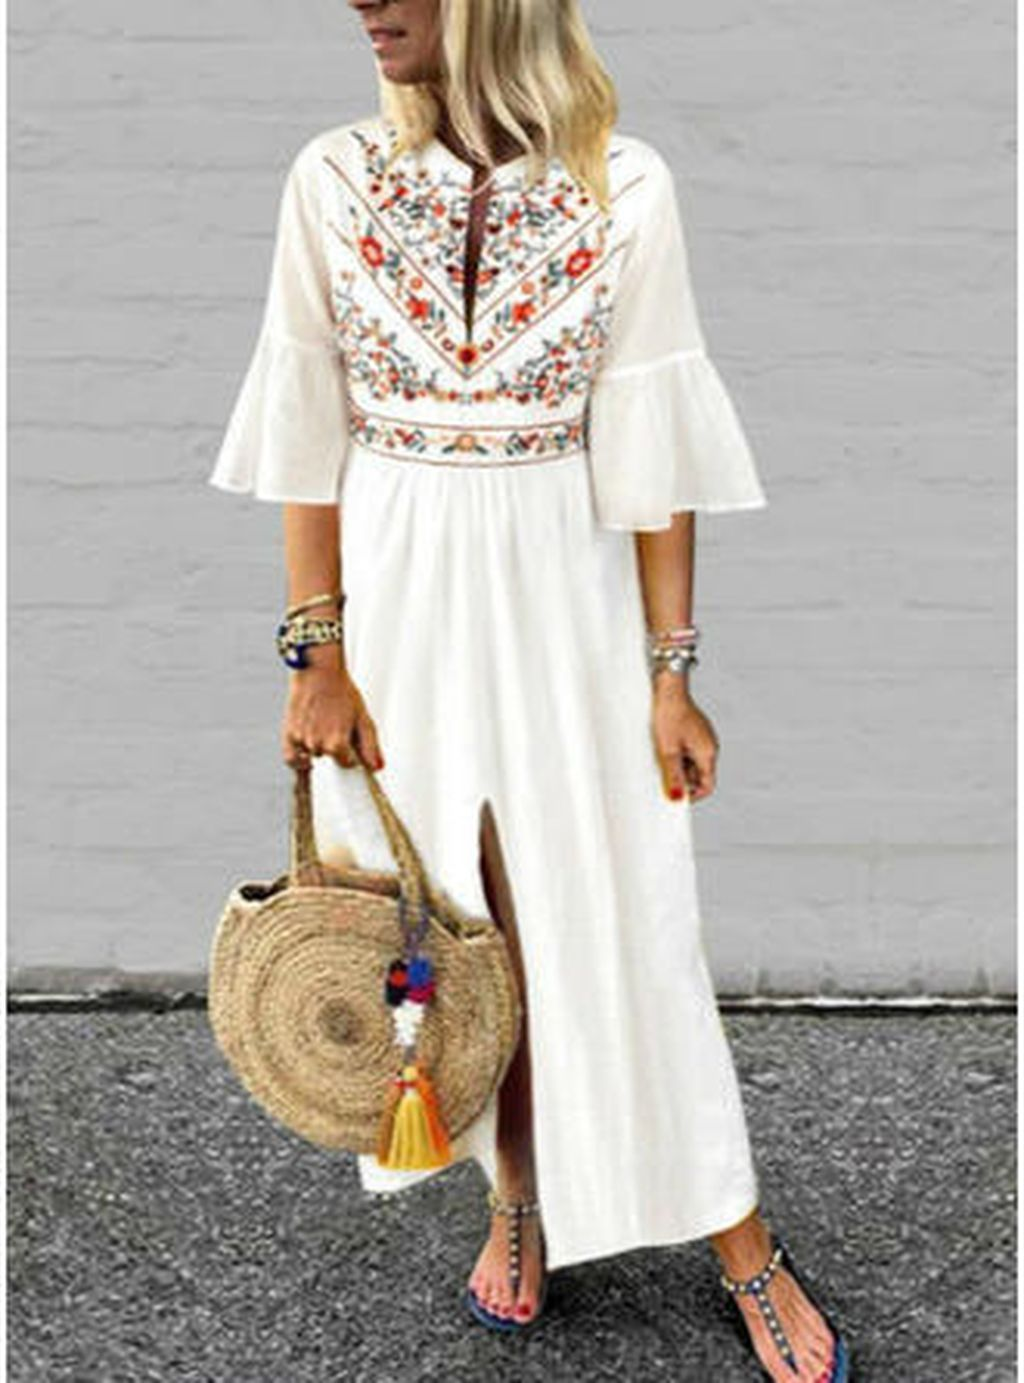 38 Beautiful Vintage Maxi Dress Summer Outfits Printed Casual Dresses Casual Dresses Maxi Dress With Sleeves [ 1383 x 1024 Pixel ]